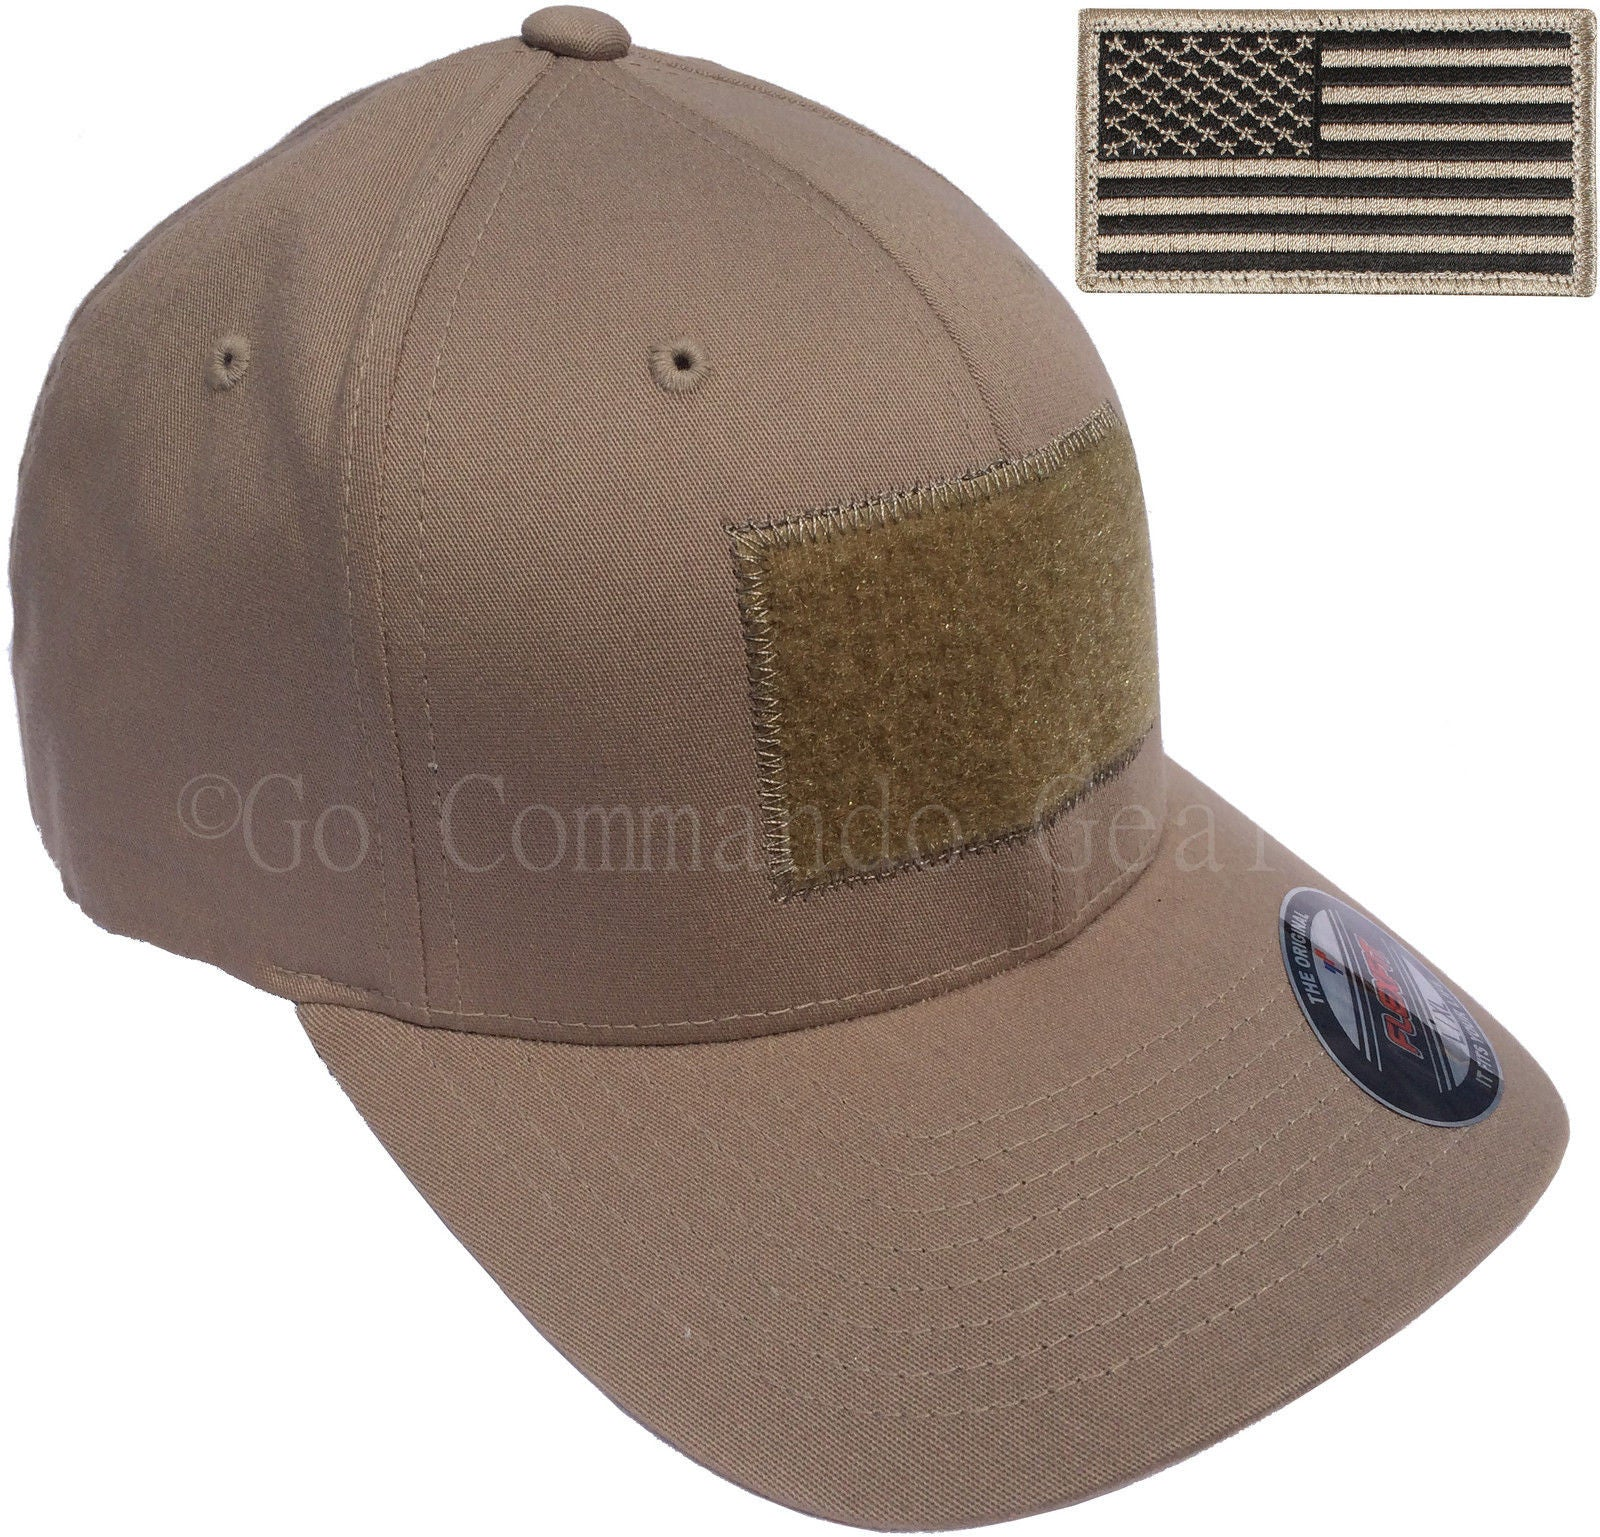 Men s Fitted 98% Cotton Flexfit Mid Profile Tactical Cap w Velcro Area and  Patch Men s Fitted 98% Cotton Flexfit Mid Profile Tactical Cap ... 6af97860cd6